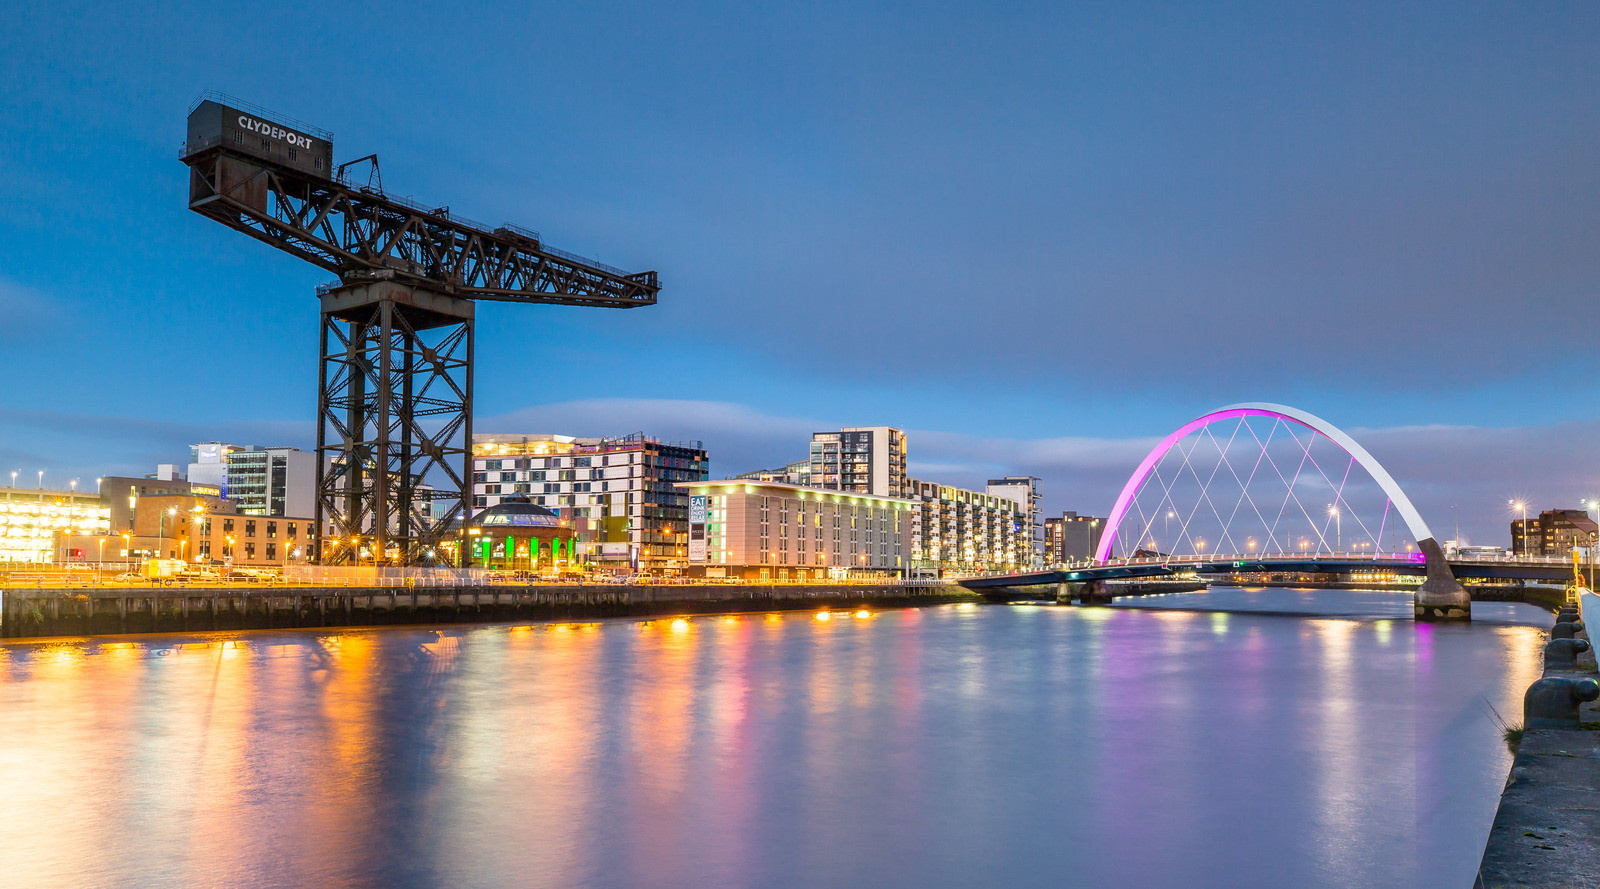 Canva - Clyde Arc and Glasgow Skyline at